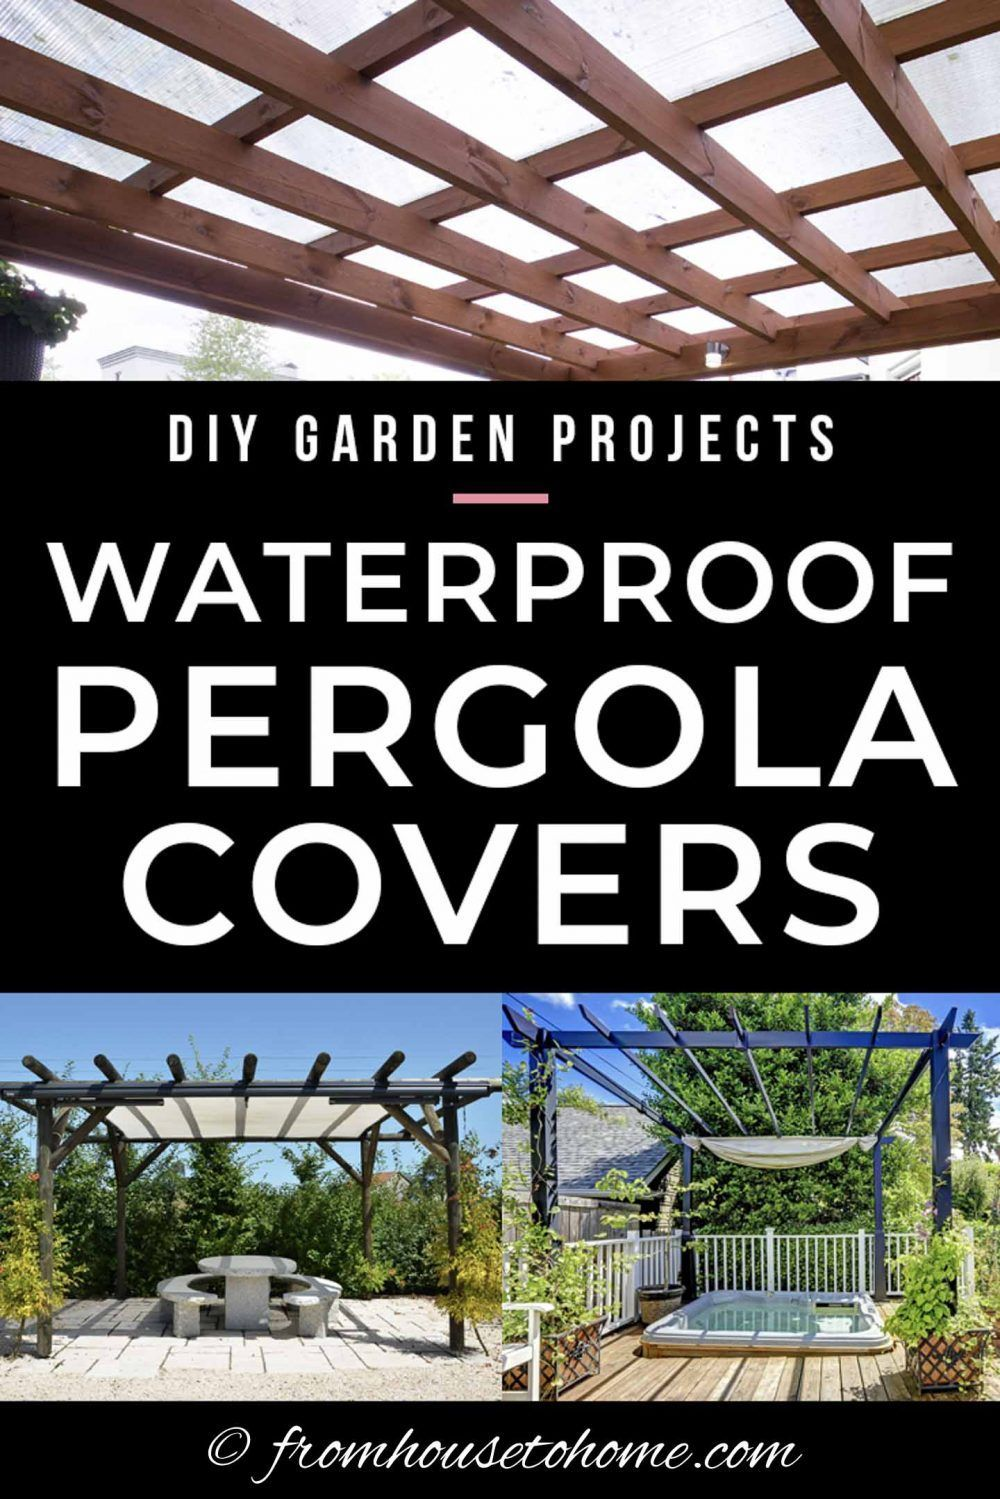 DIY Waterproof Pergola Cover Ideas: 7 Ways To Protect Your ... on Patio Cover Ideas For Rain id=23823